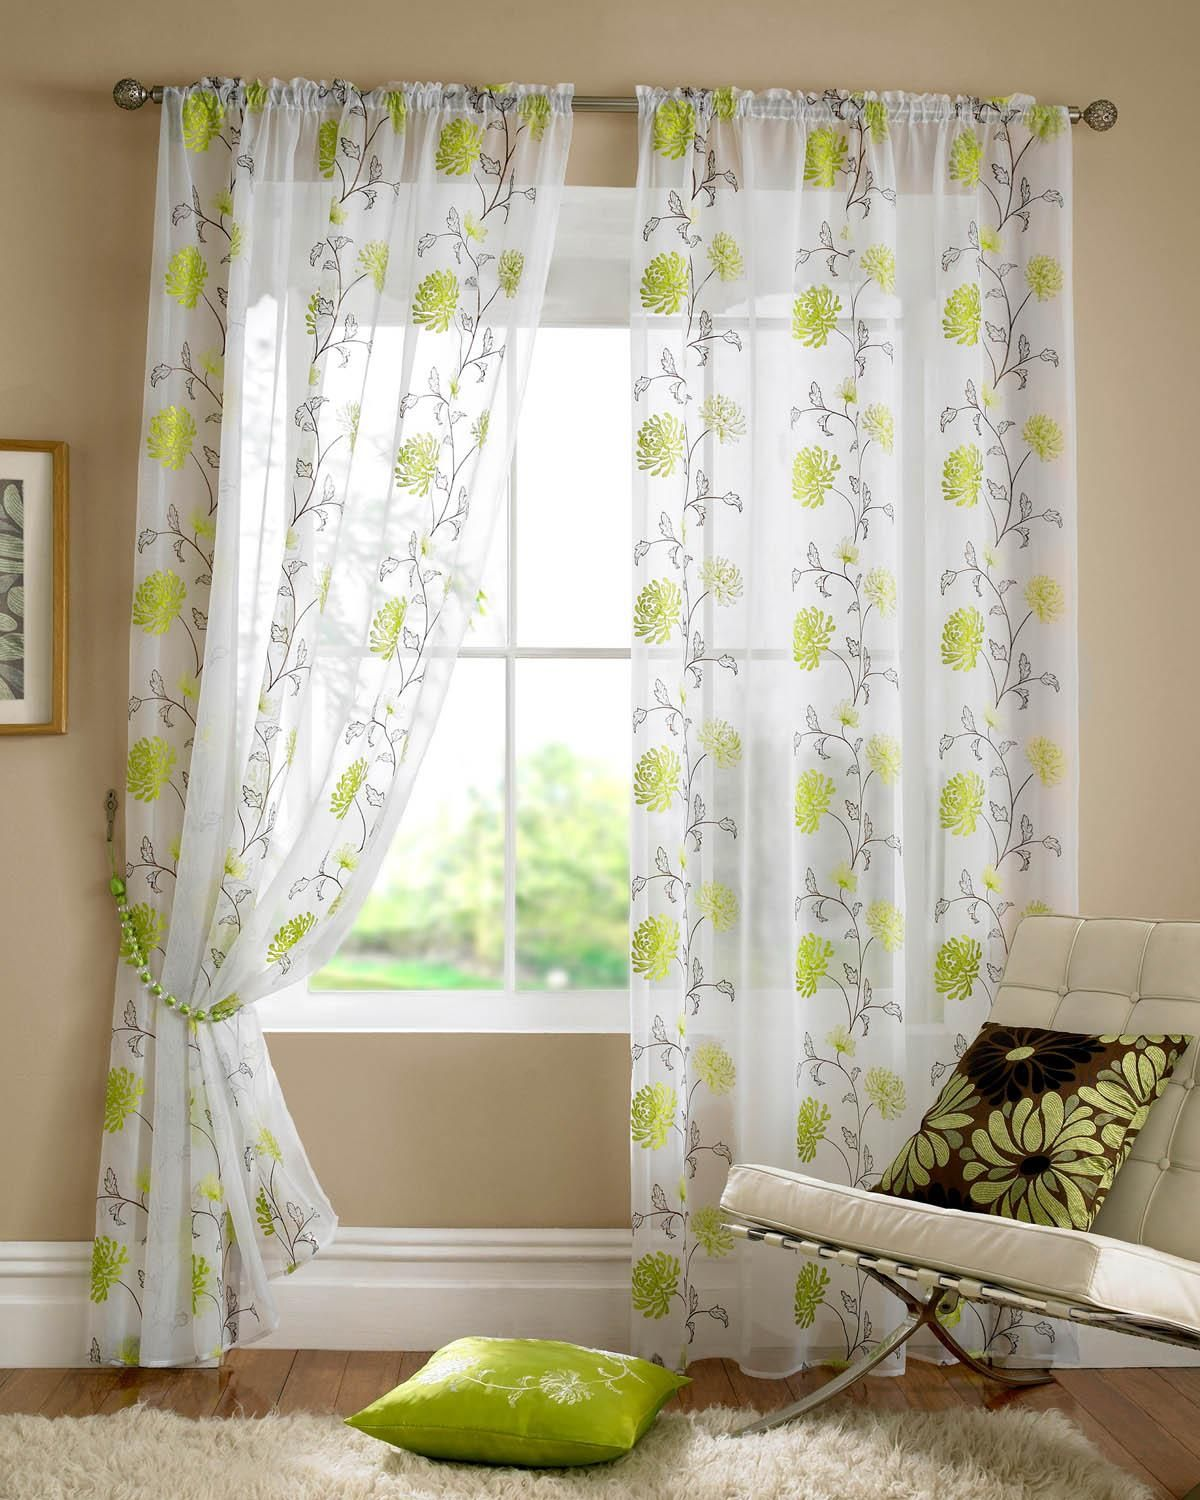 Voile curtain panel brown cheap green curtain voile uk delivery - Lombok Rod Pocket Voile Lime Cheap Green Curtain Voile Uk Delivery